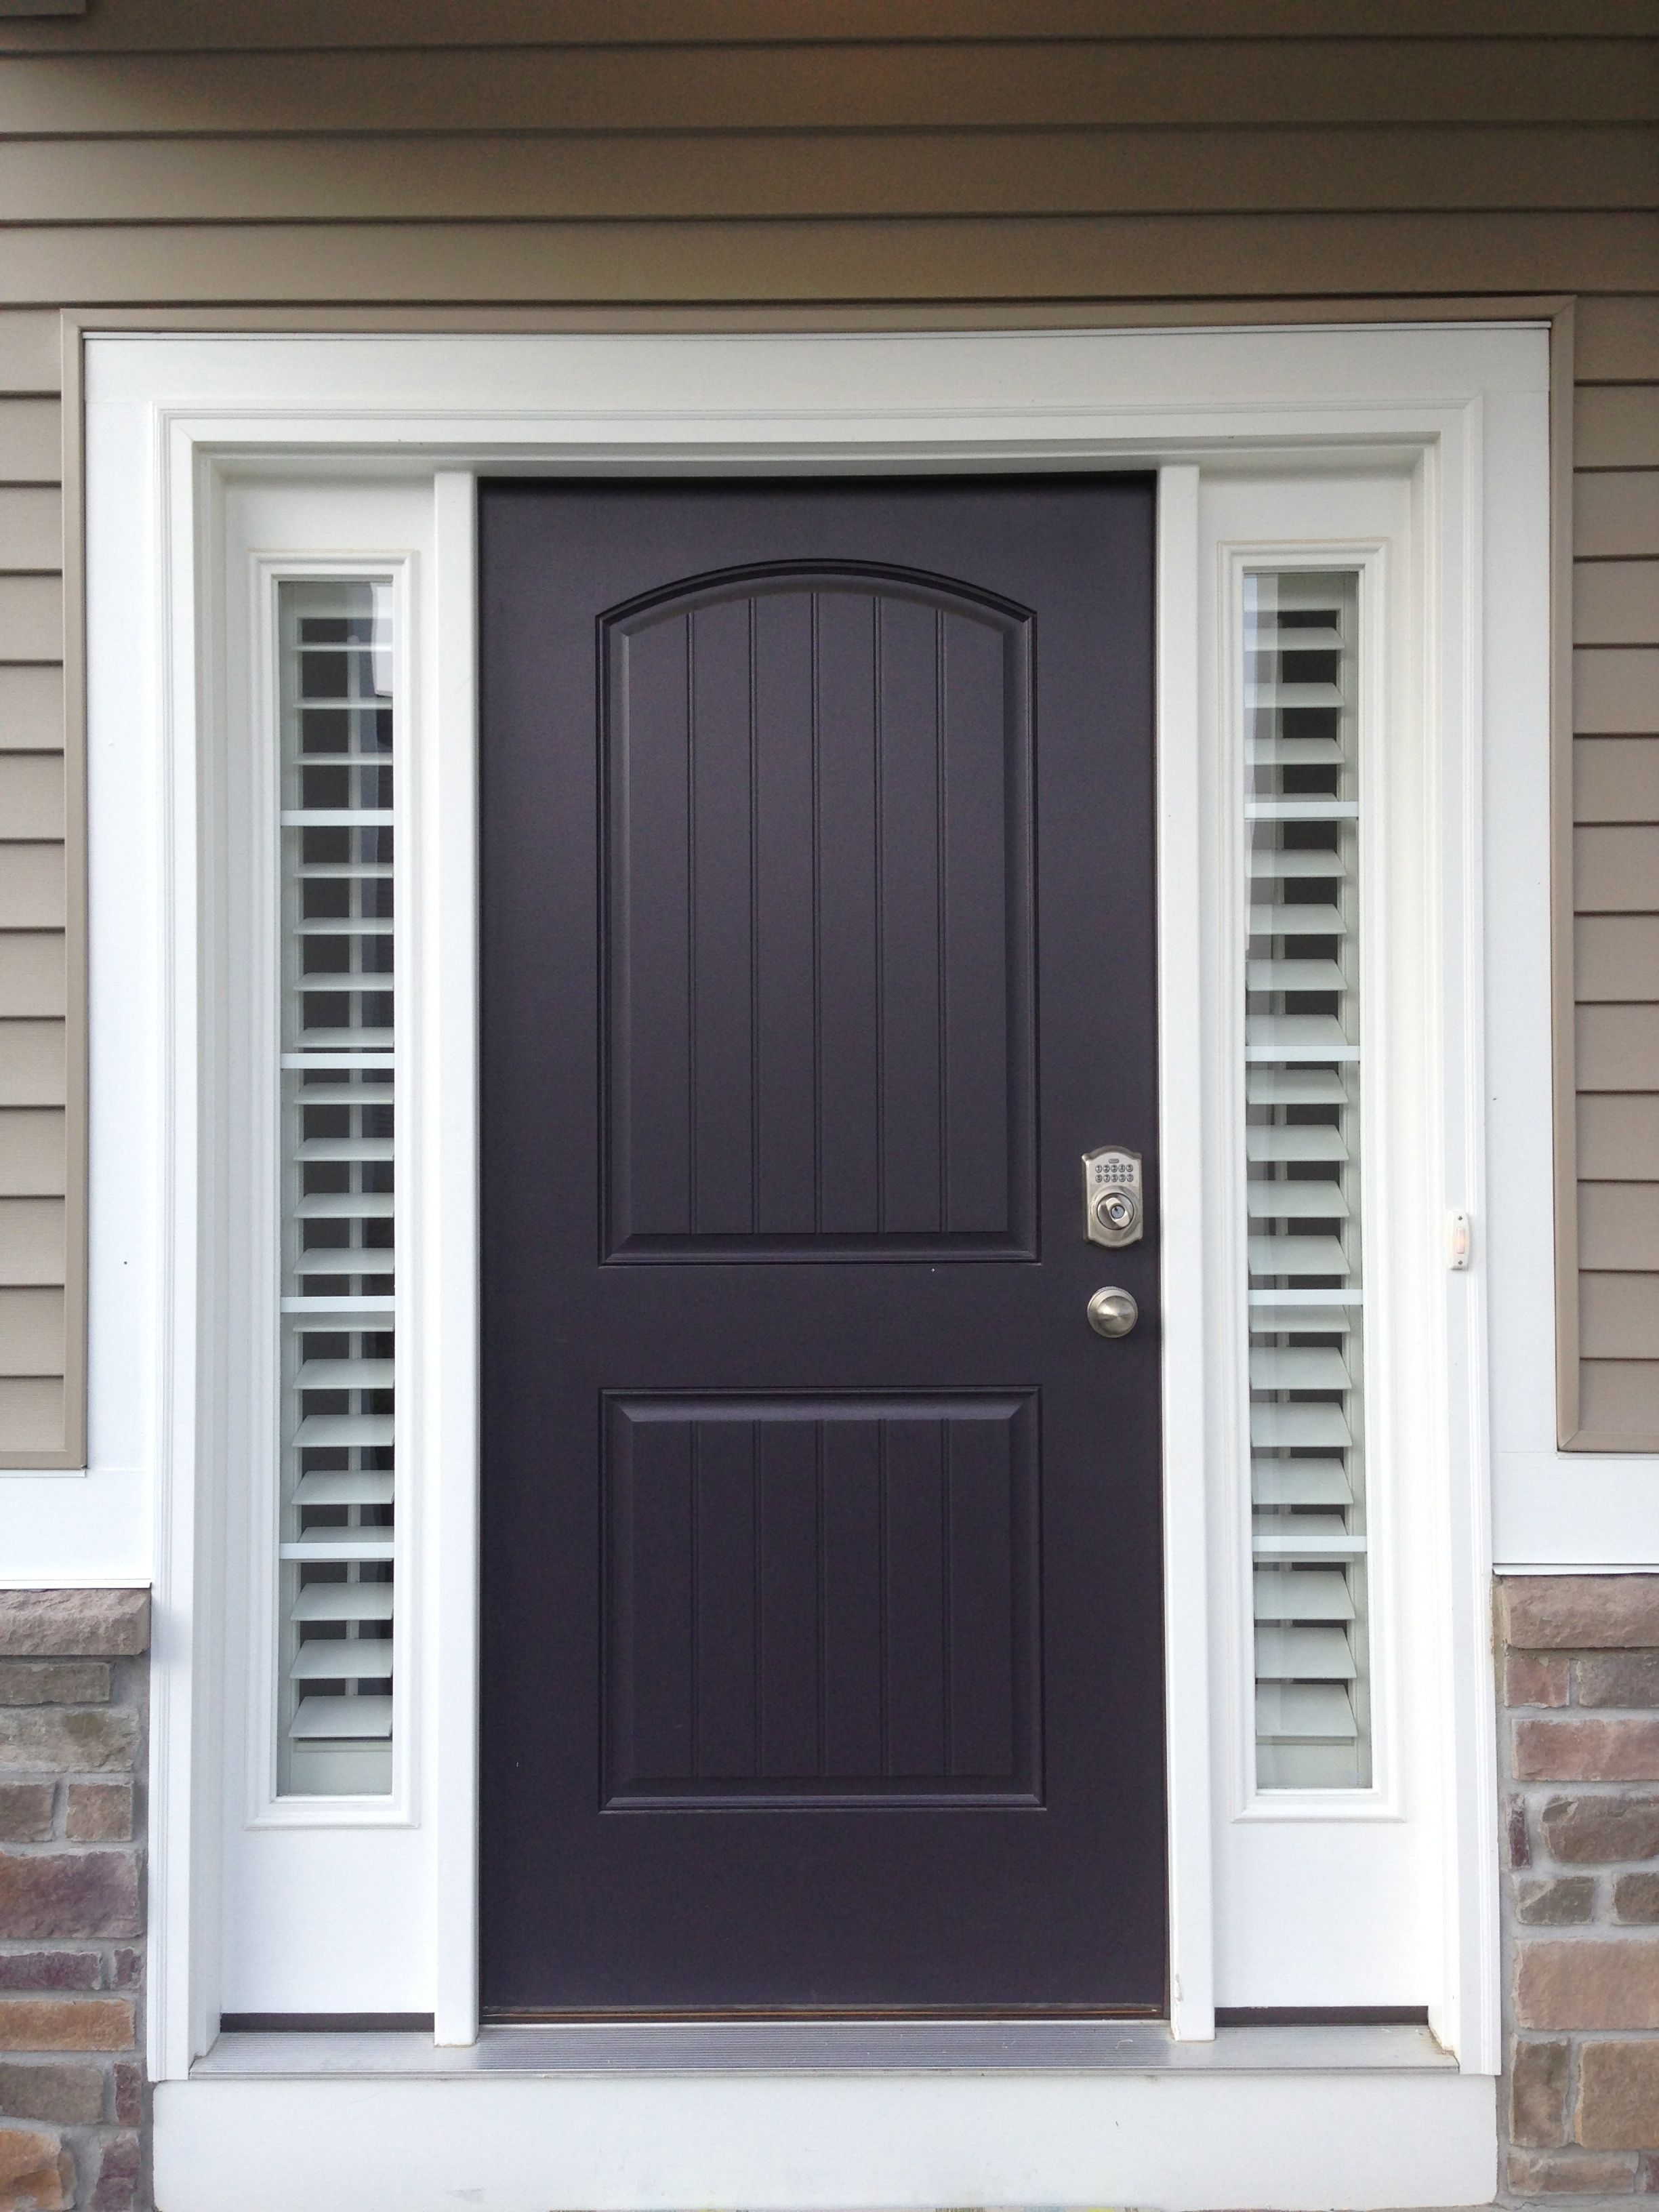 Entry door sidelight window shutters sunburst shutters for Exterior door with window